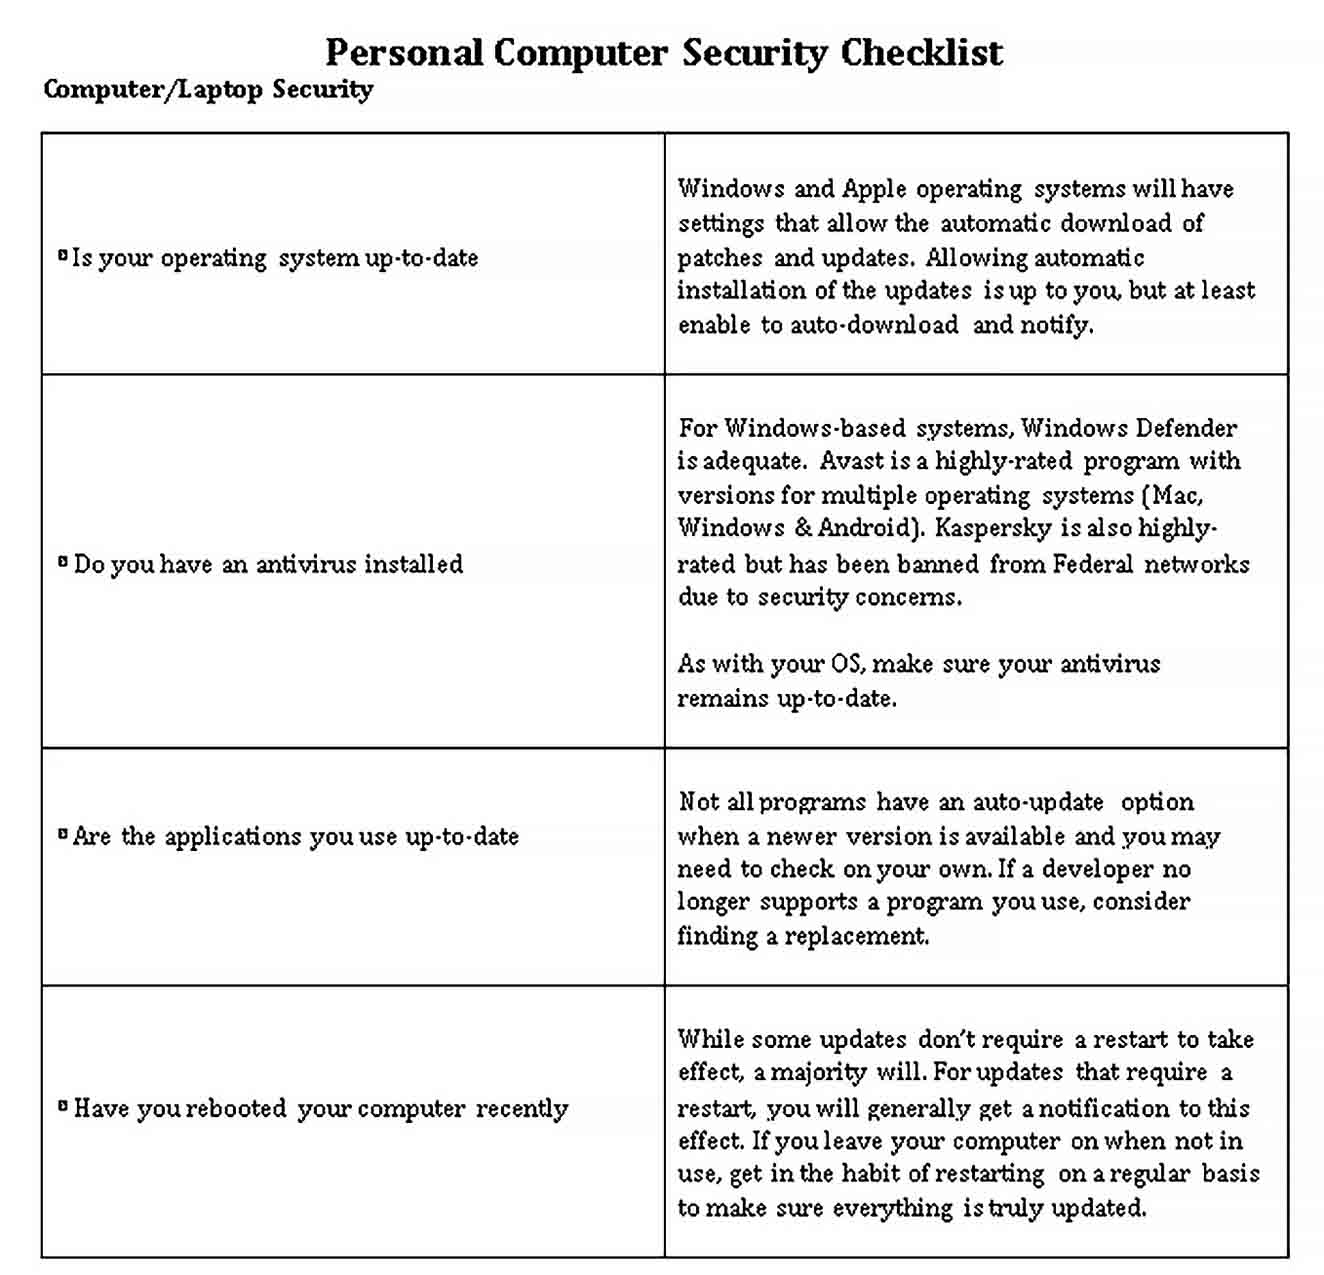 Template Personal Computer Security Checklist in PDF